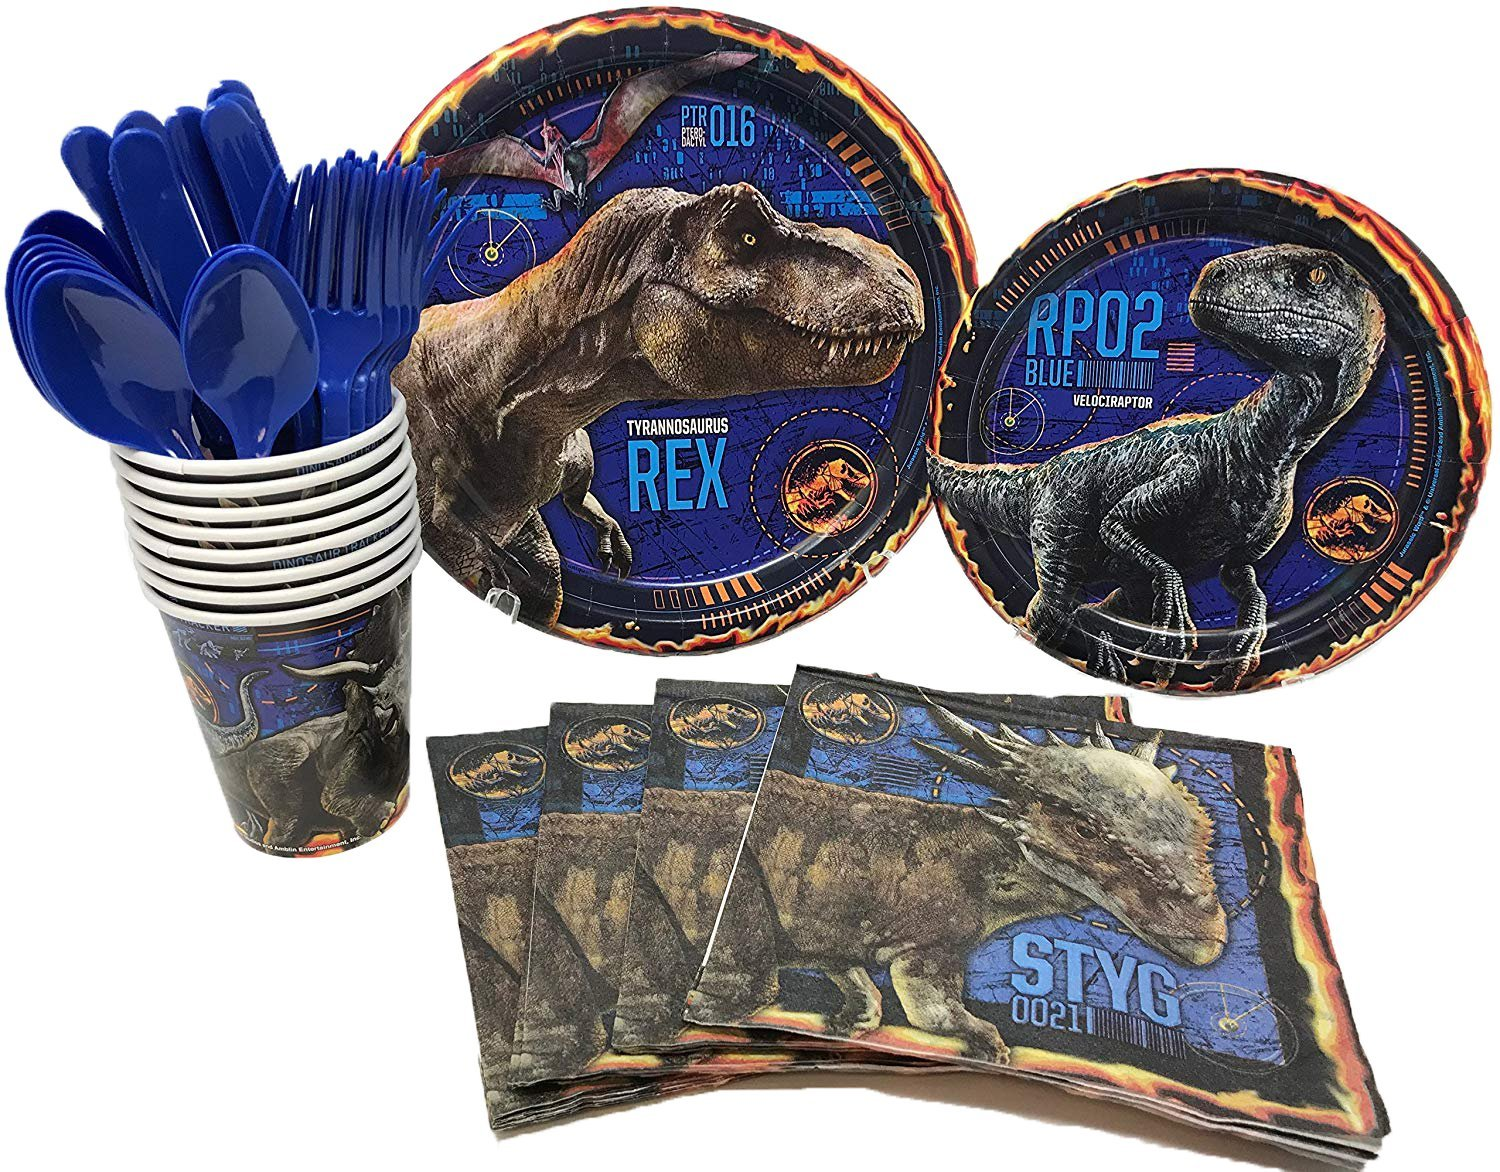 BashBox Jurassic World Fallen Kingdom Dinosaur Birthday Party Supplies Pack Including Cake & Lunch Plates, Cutlery, Cups & Napkins for 8 Guests